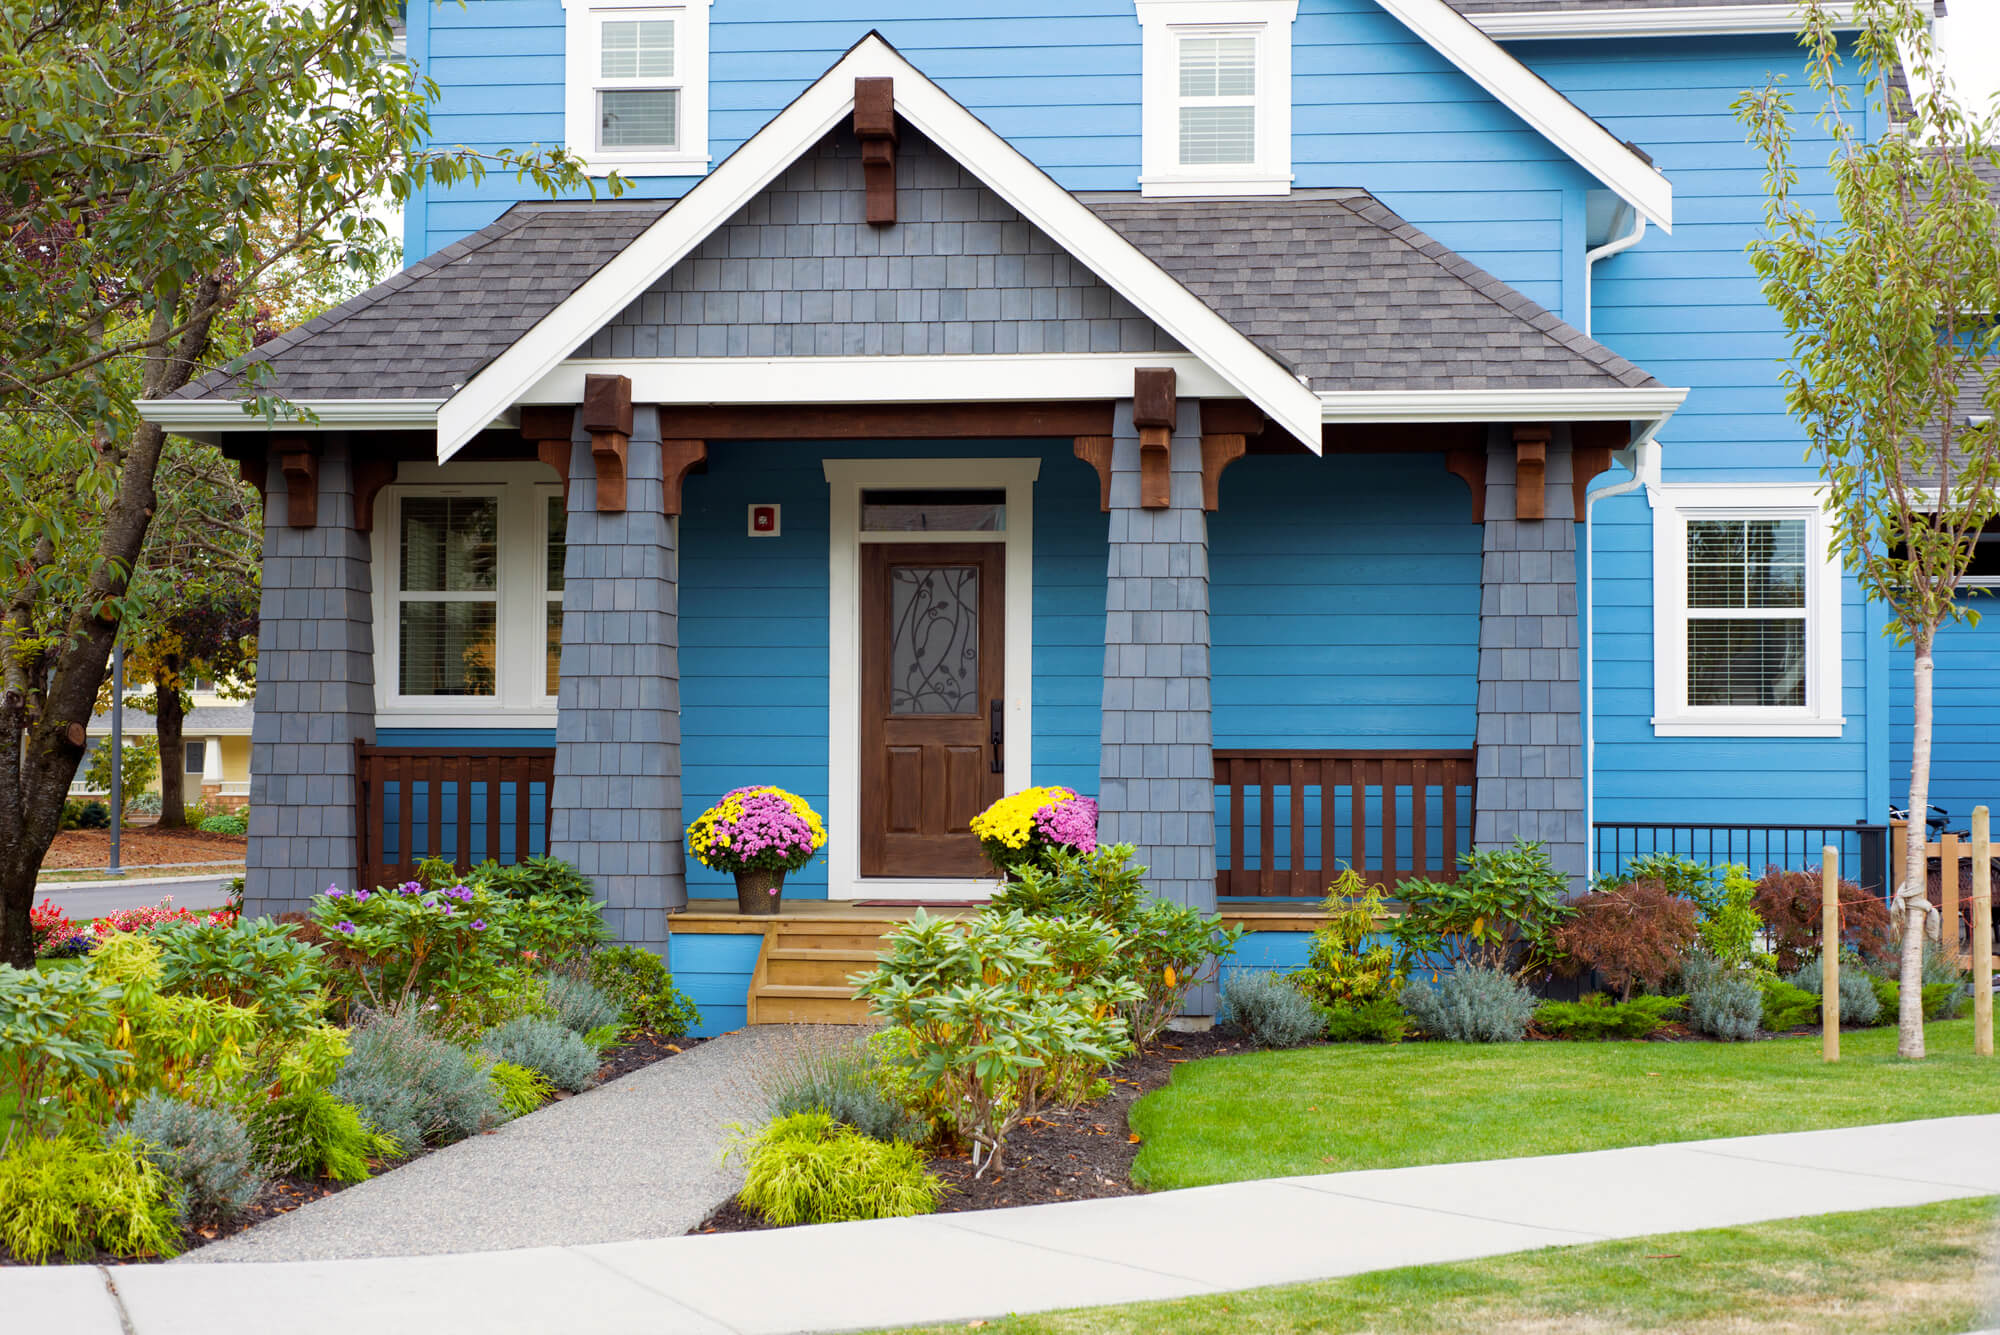 5 budget-friendly ways to landscape your front yard | budget dumpster